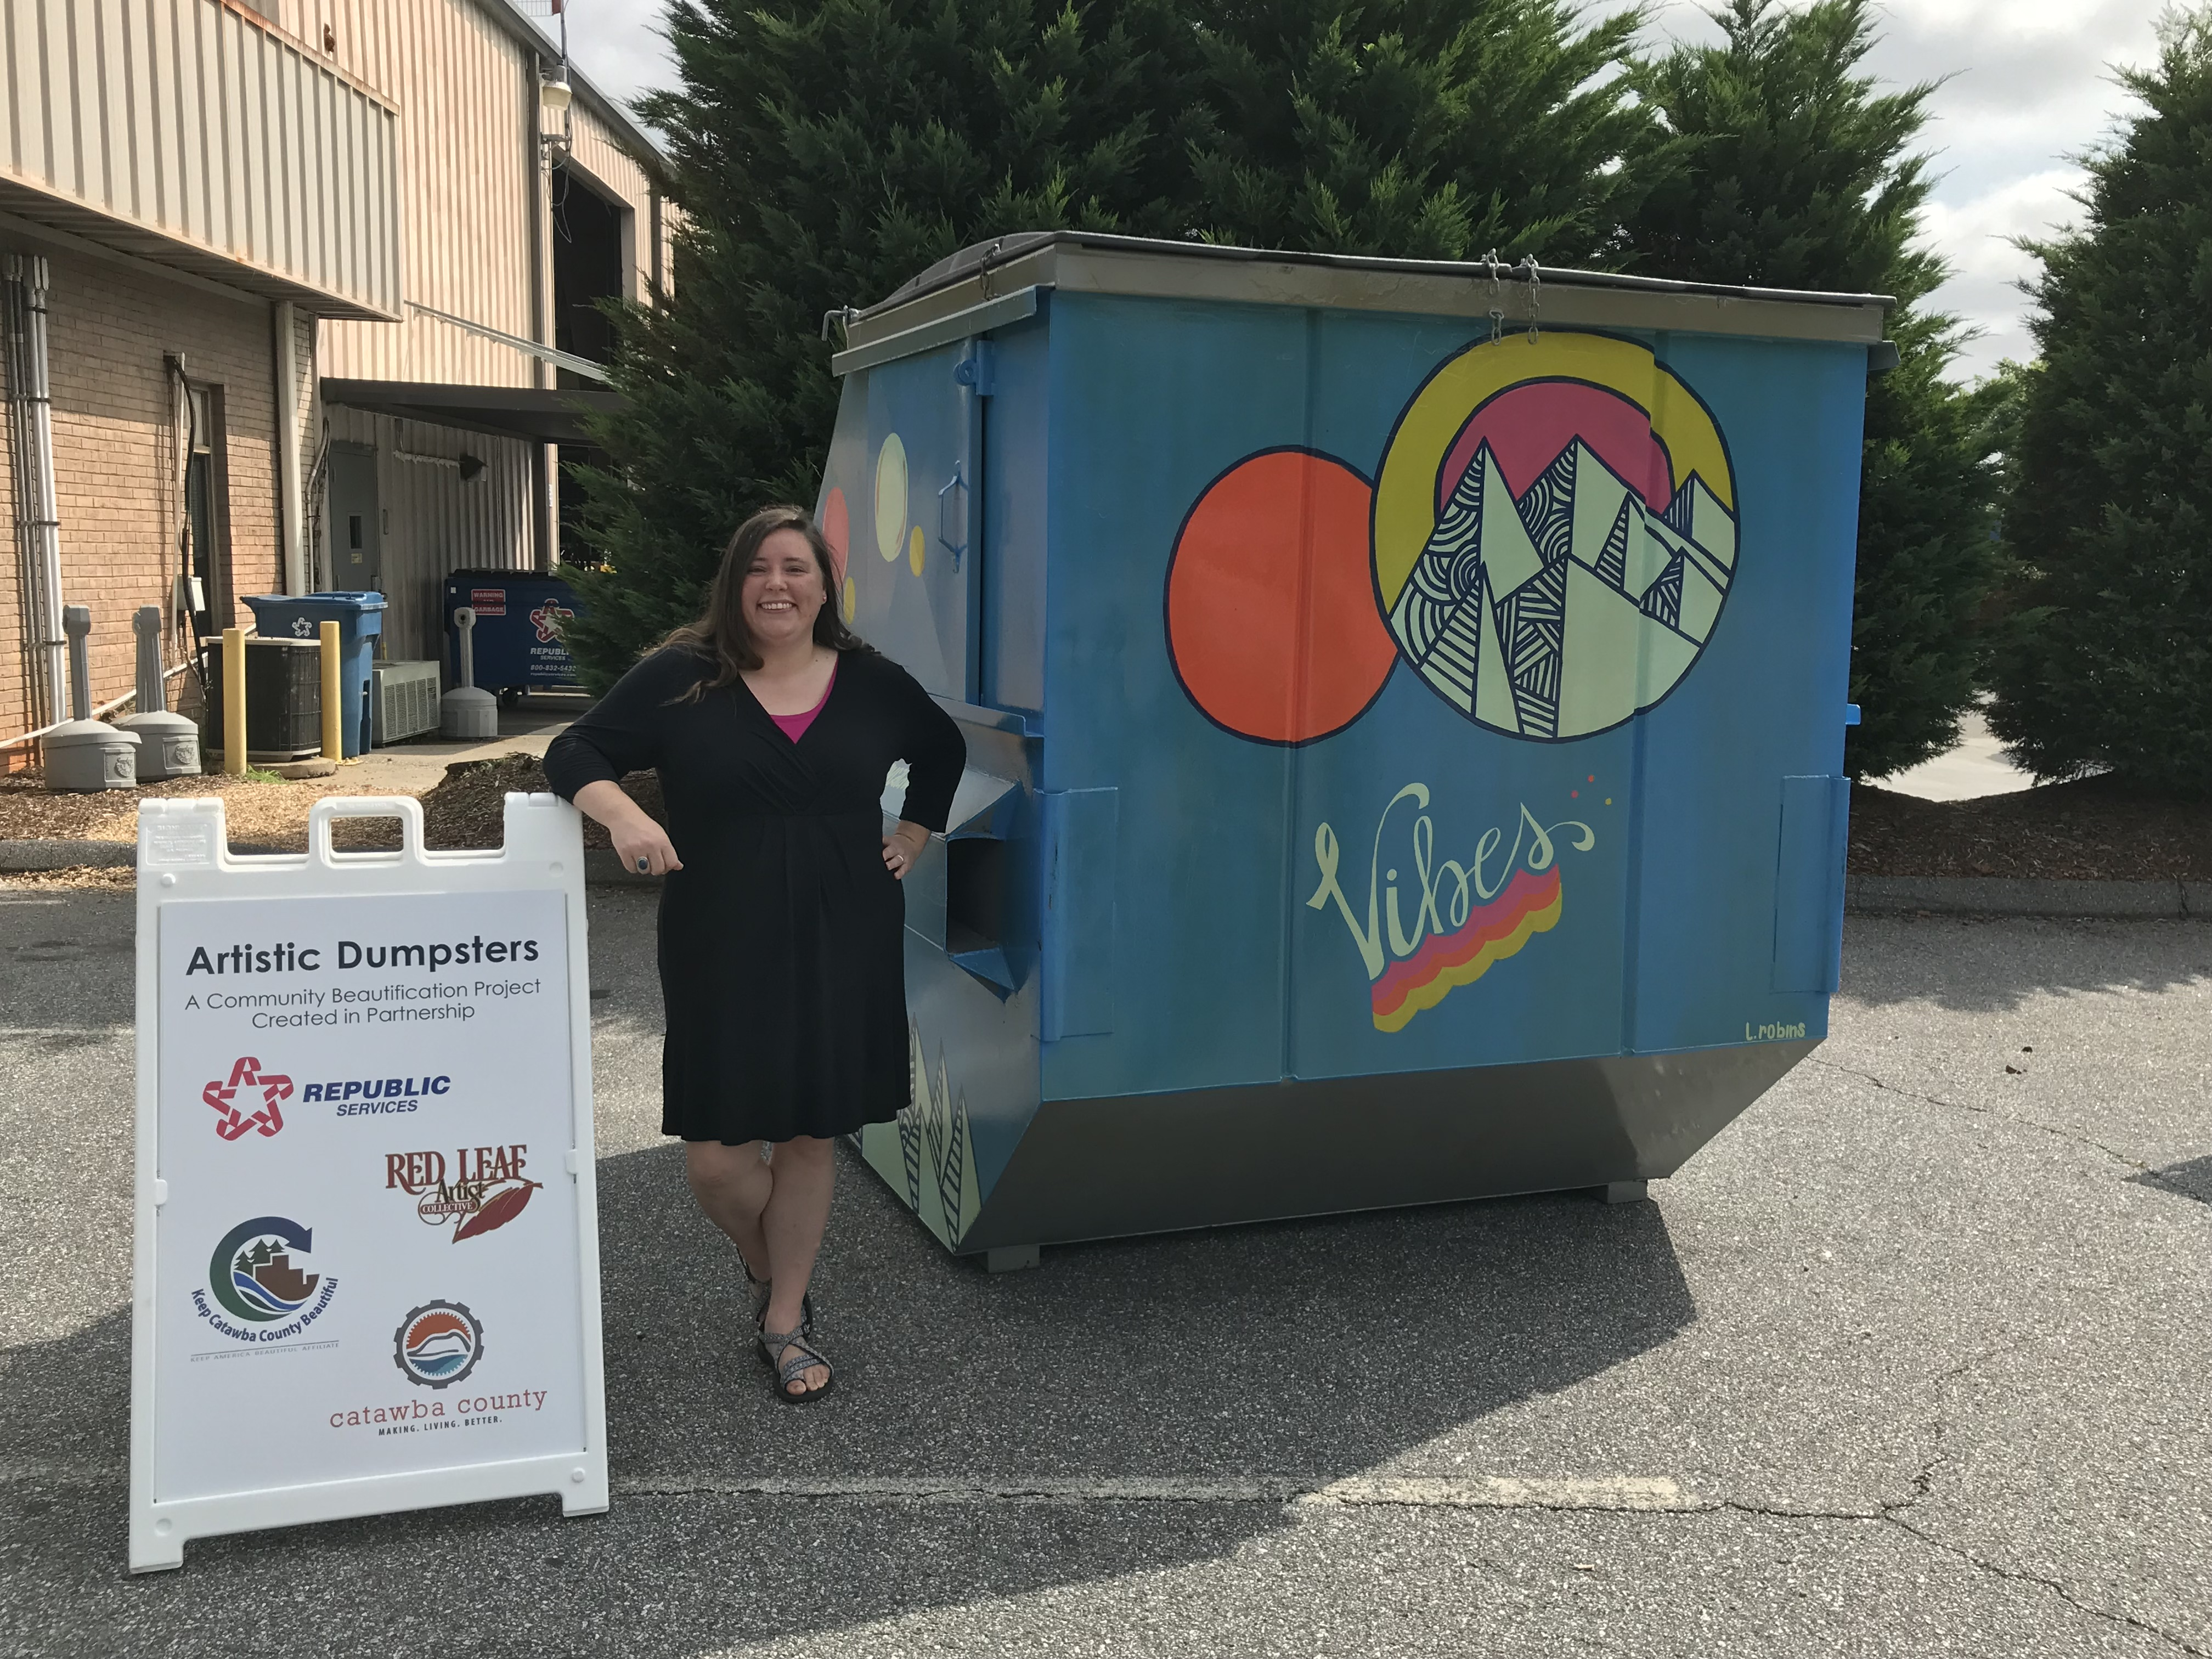 Dumpster Art Project Unveiled to Community